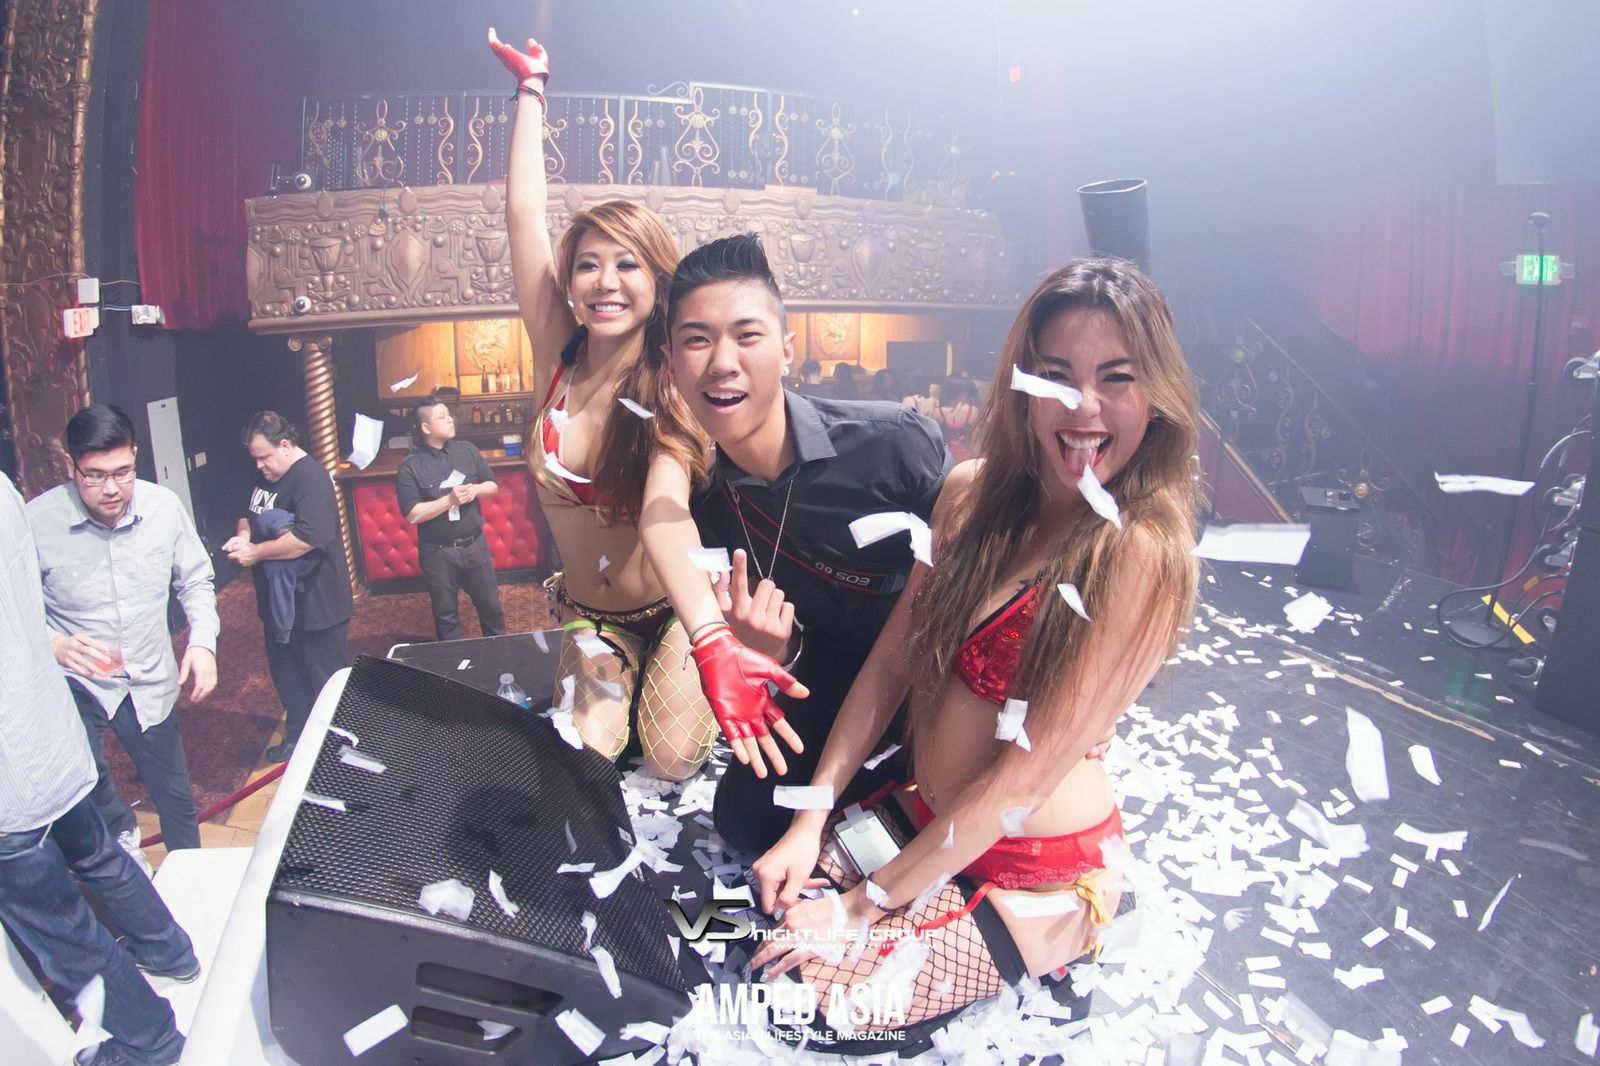 Opinion, Asian clubs in los angeles question